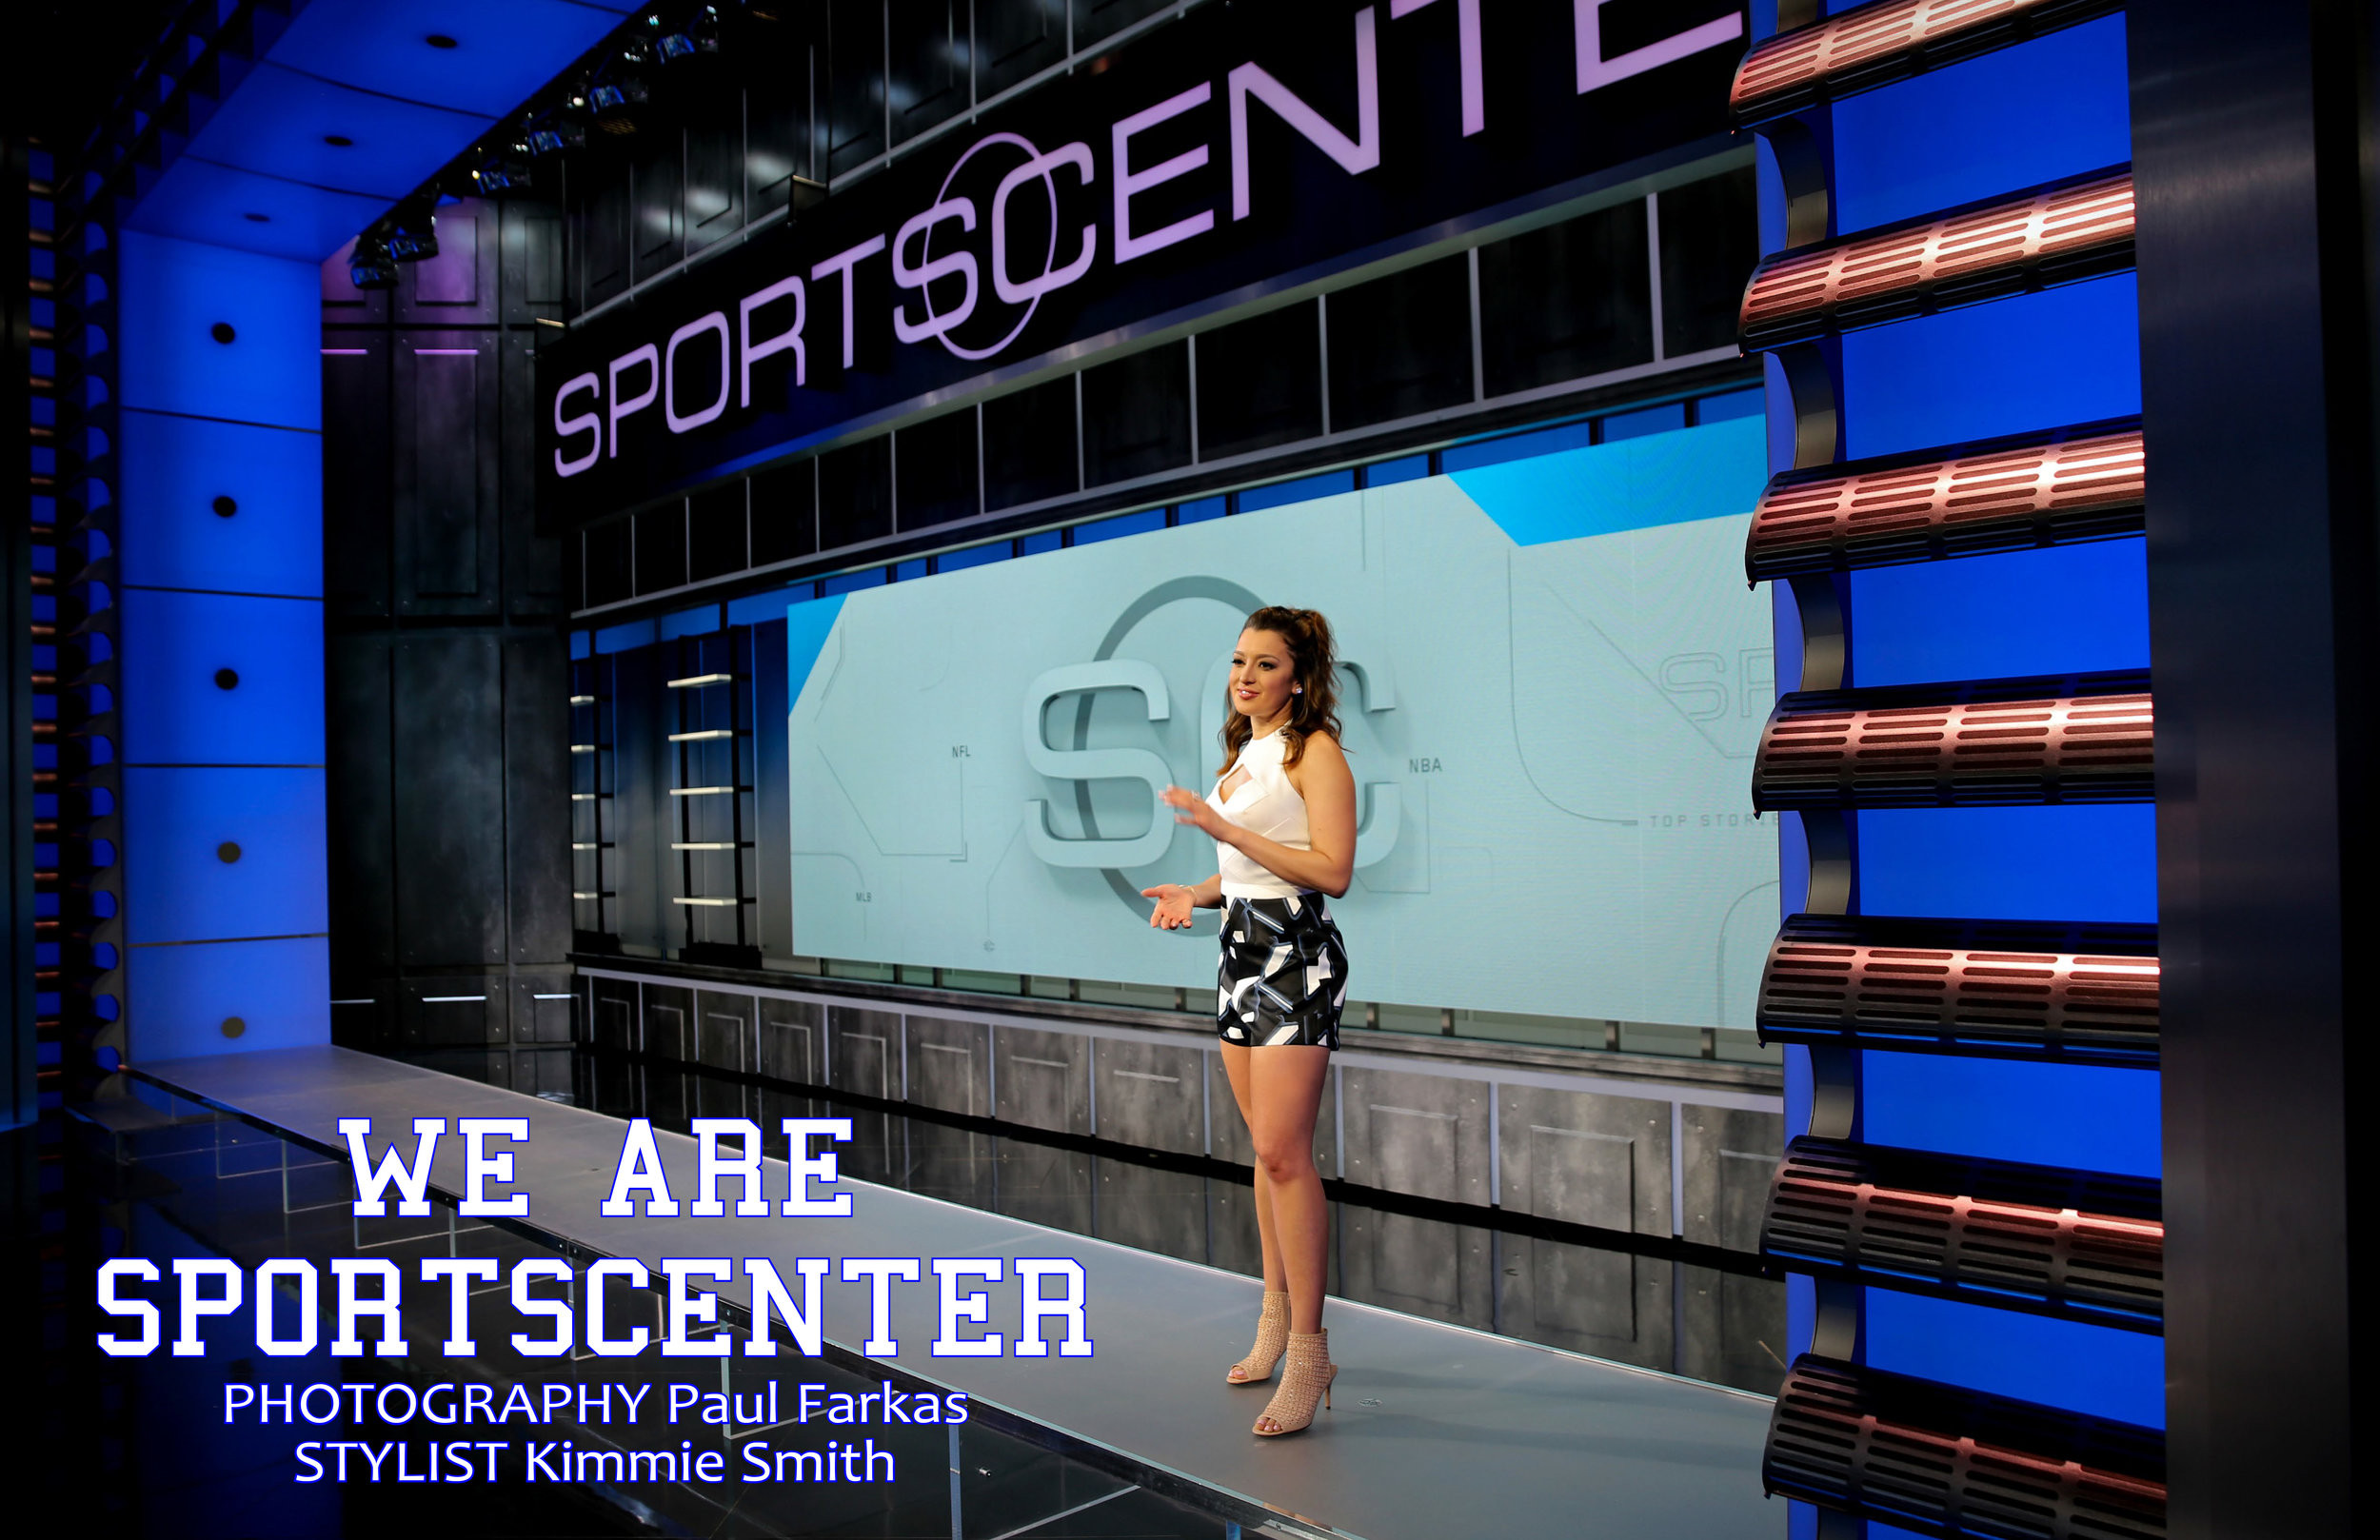 AM MAR WE ARE SPORTSCENTER-1.jpg